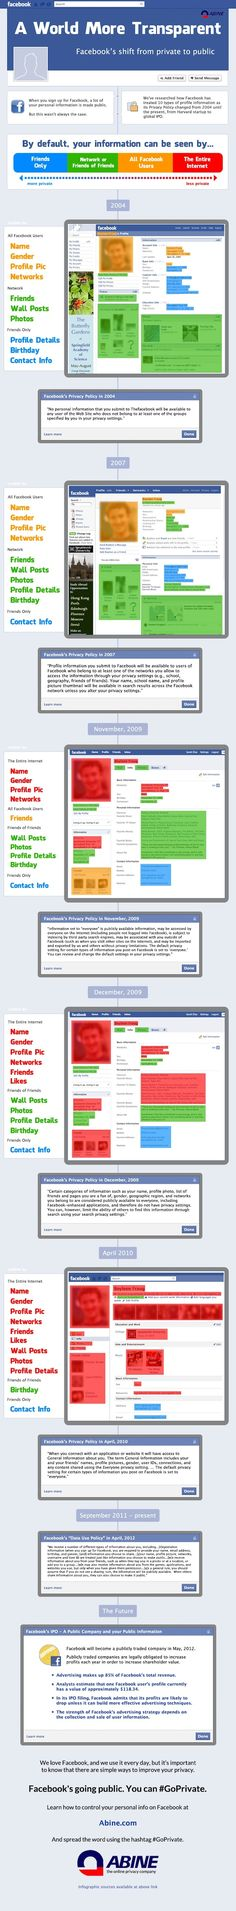 Facebook Privacy: This Service Alerts You When it Changes [INFOGRAPHIC]